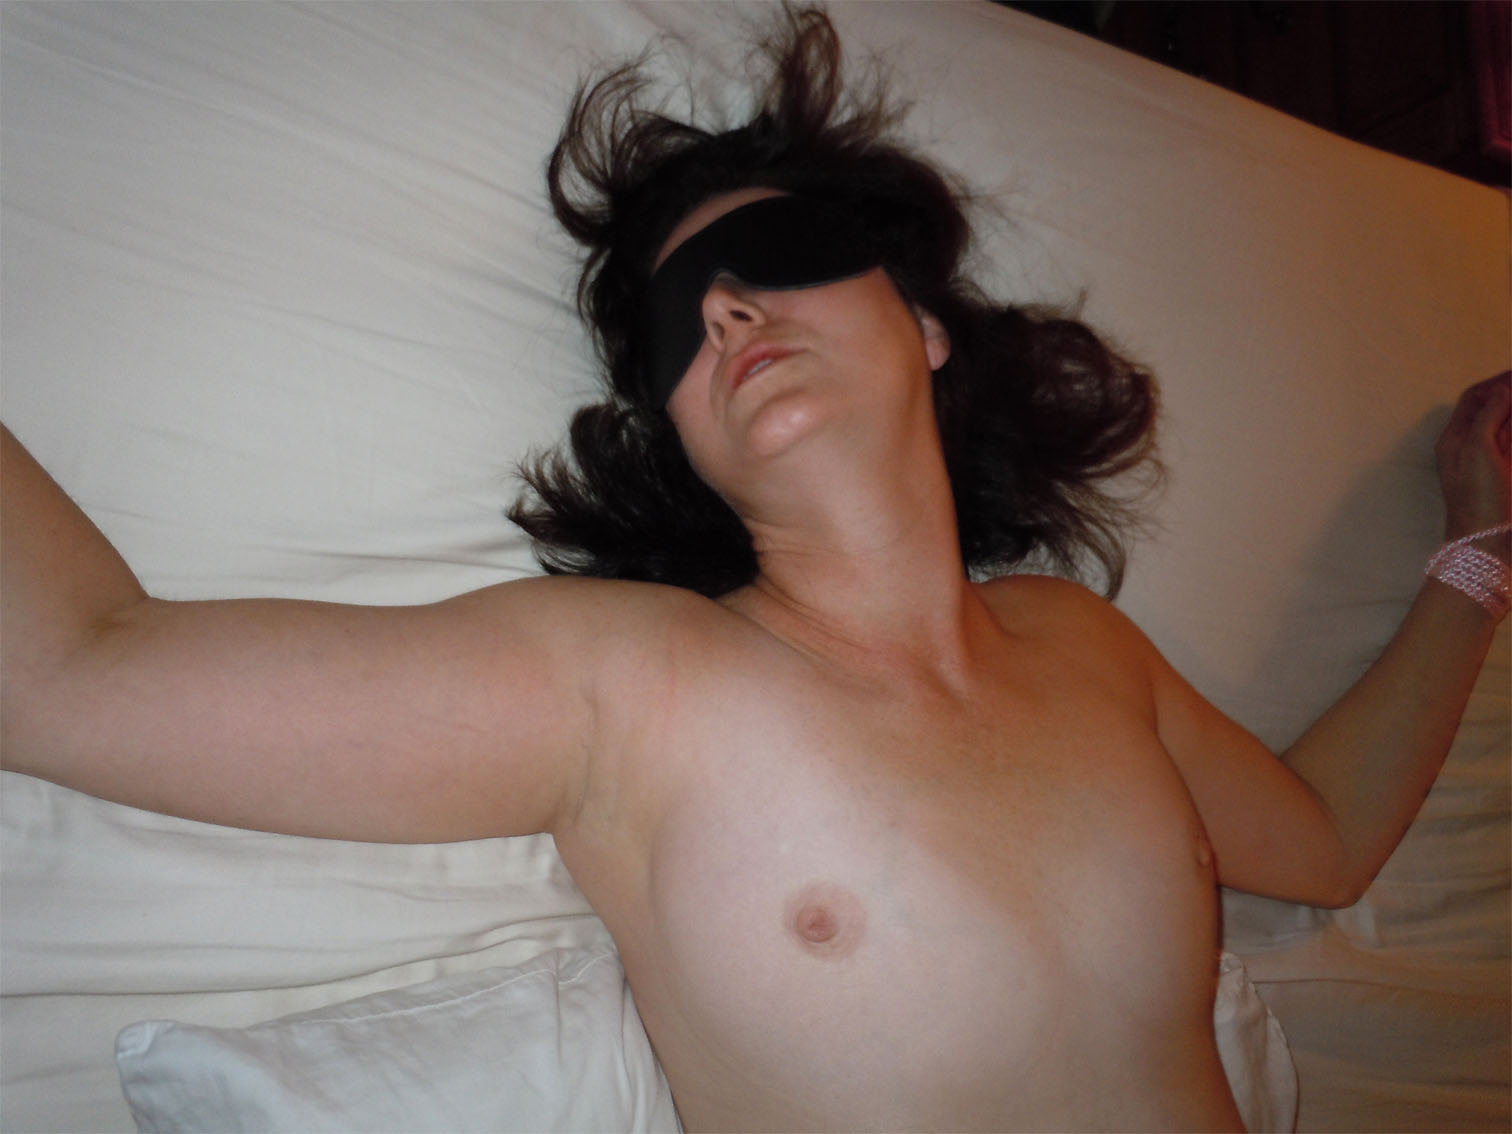 Girl blindfolded story nude